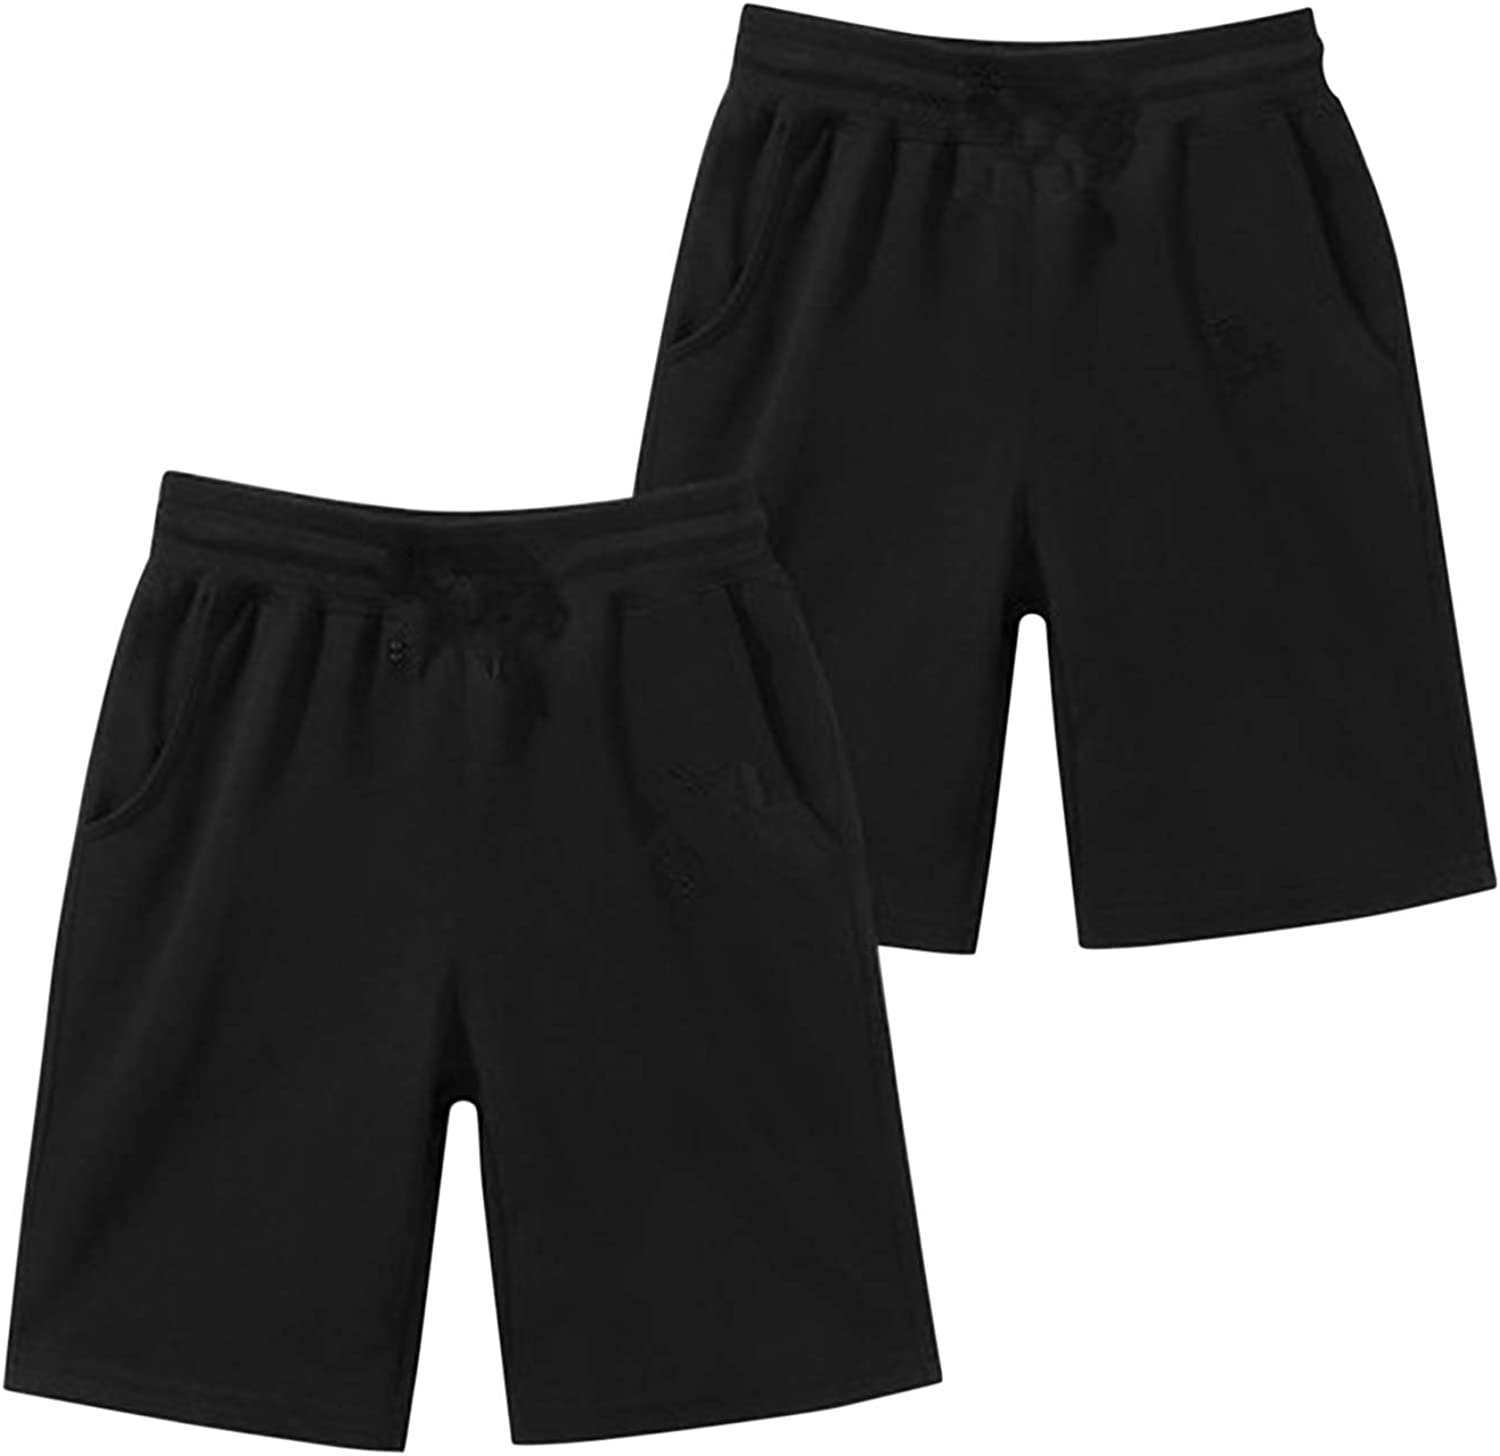 Evelin LEE Little Boys Girls Sports Cotton Stretch Solid Chino Shorts Knee Length